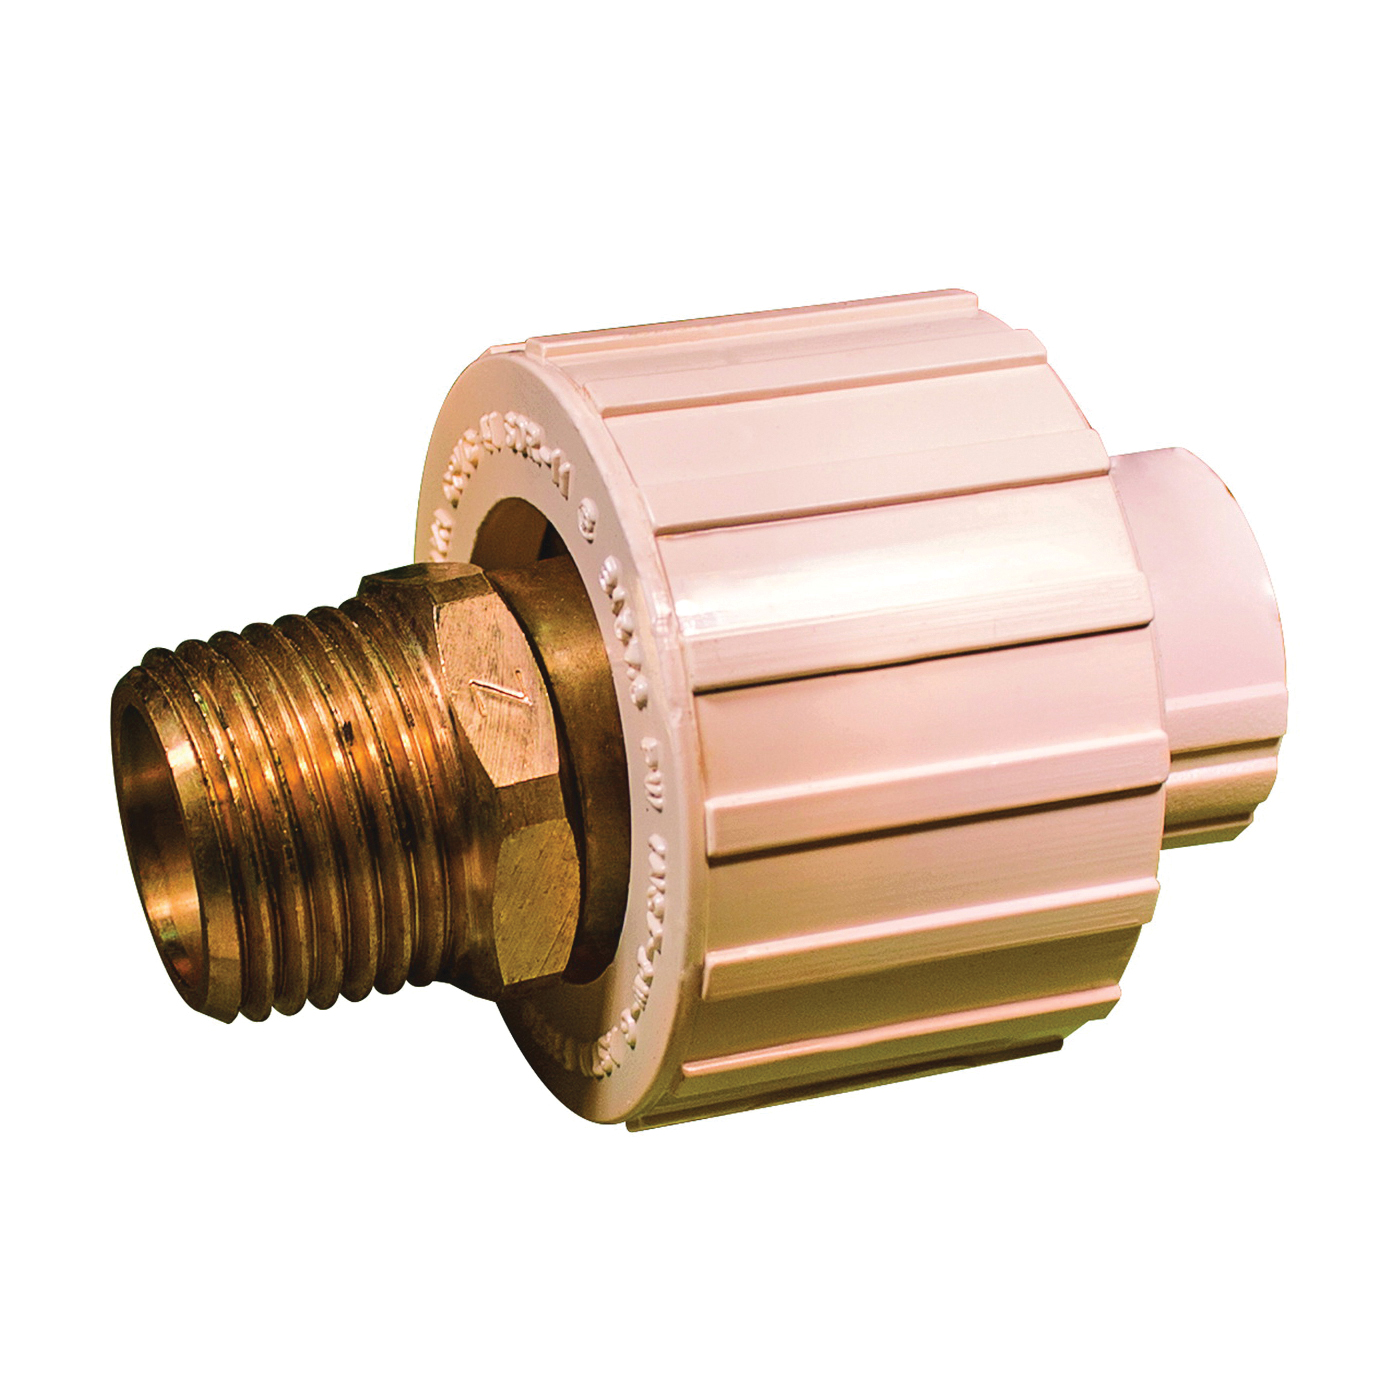 Picture of GENOVA 500 Series 53045Z Transition Union, 1/2 in, Slip Joint x MIP, 100 psi Pressure